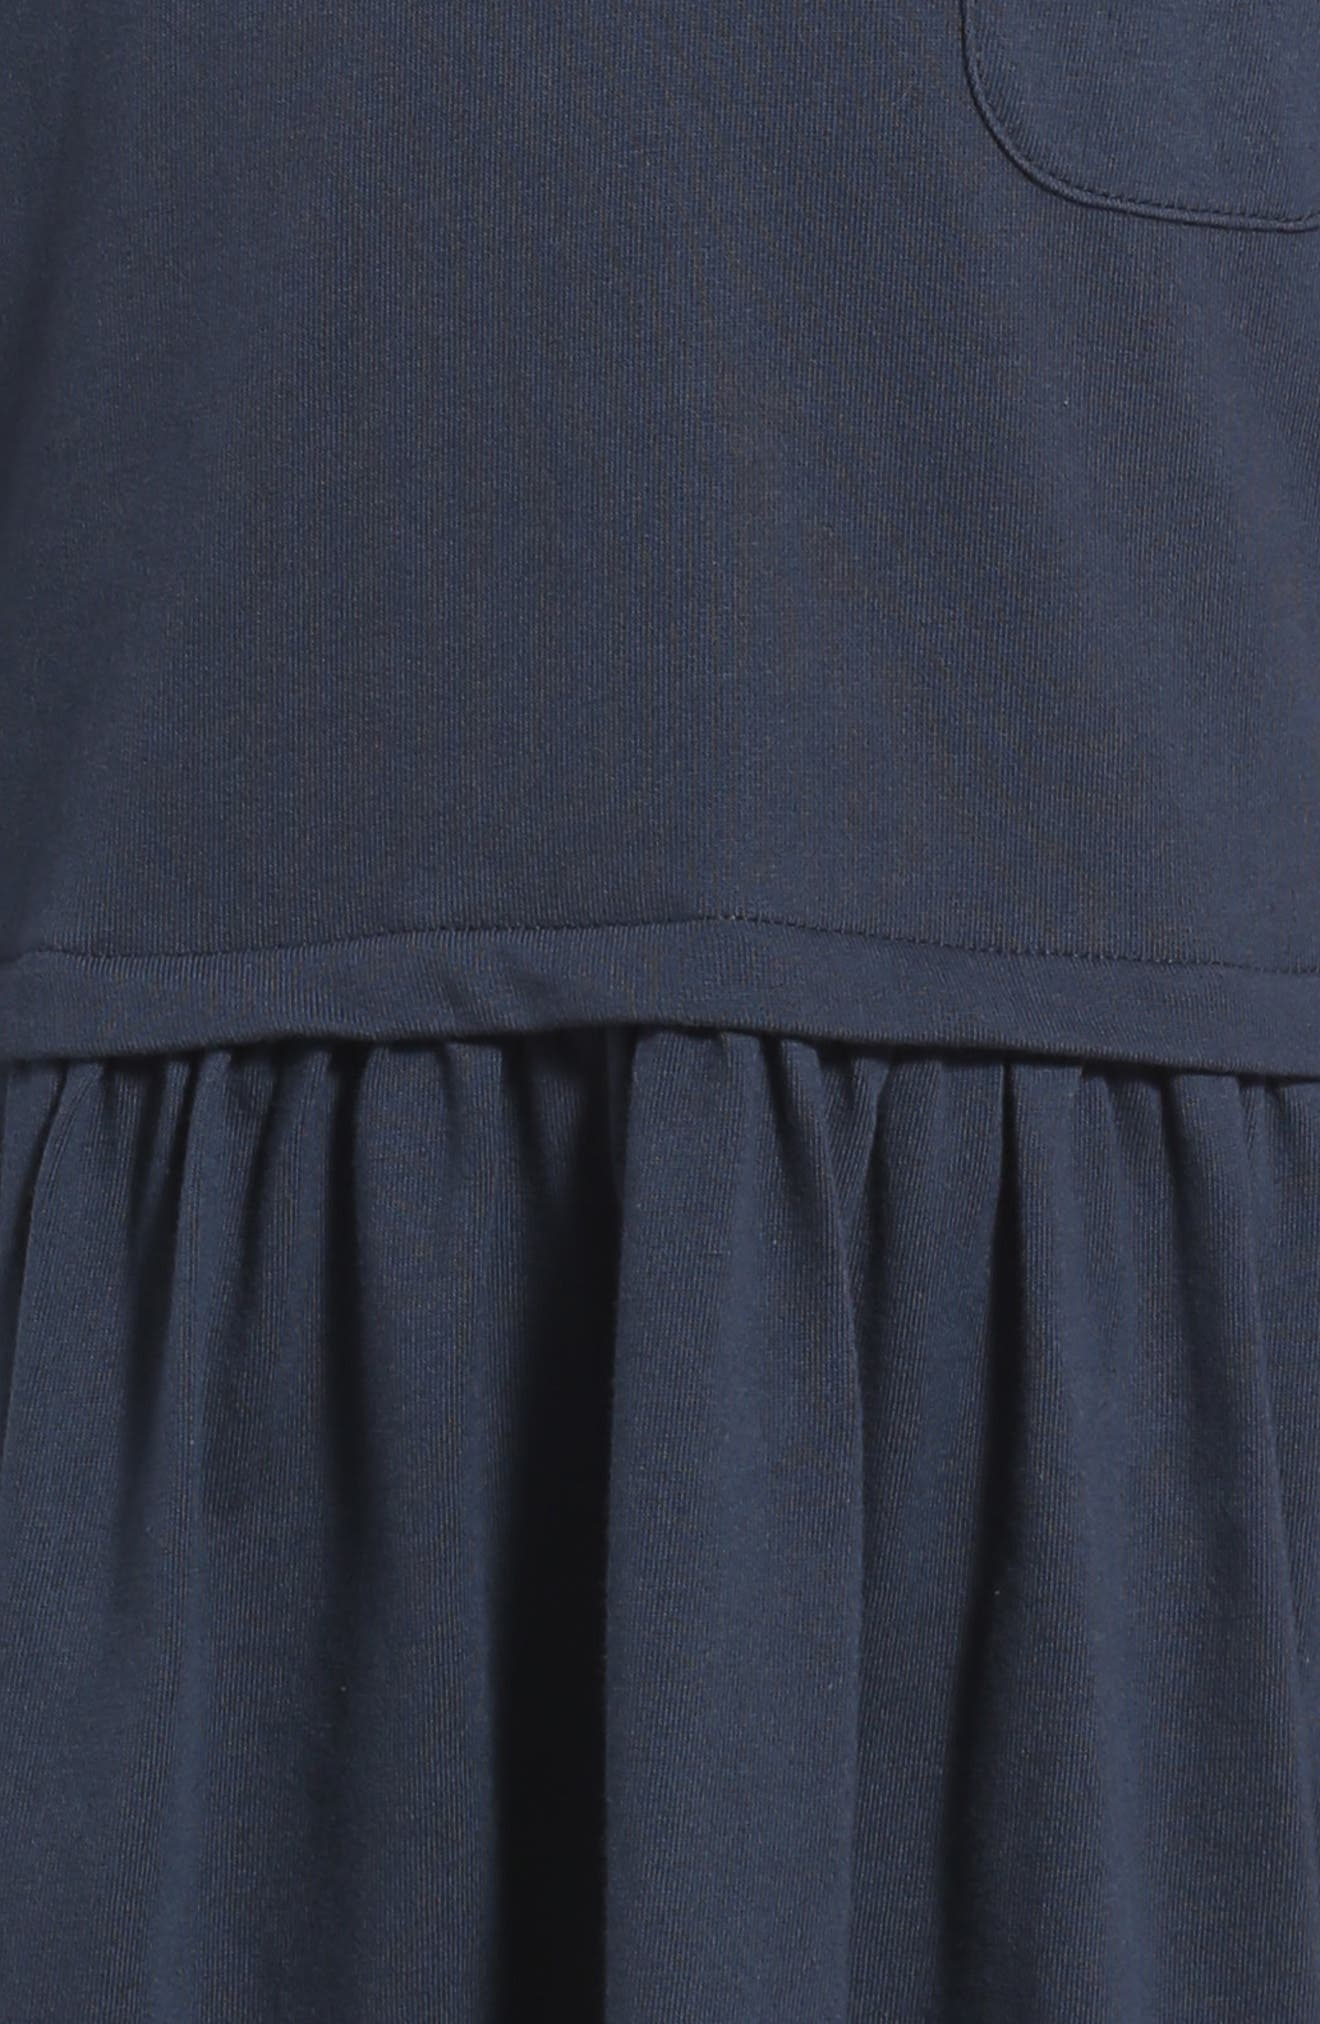 Solid Pocket Dress,                             Alternate thumbnail 3, color,